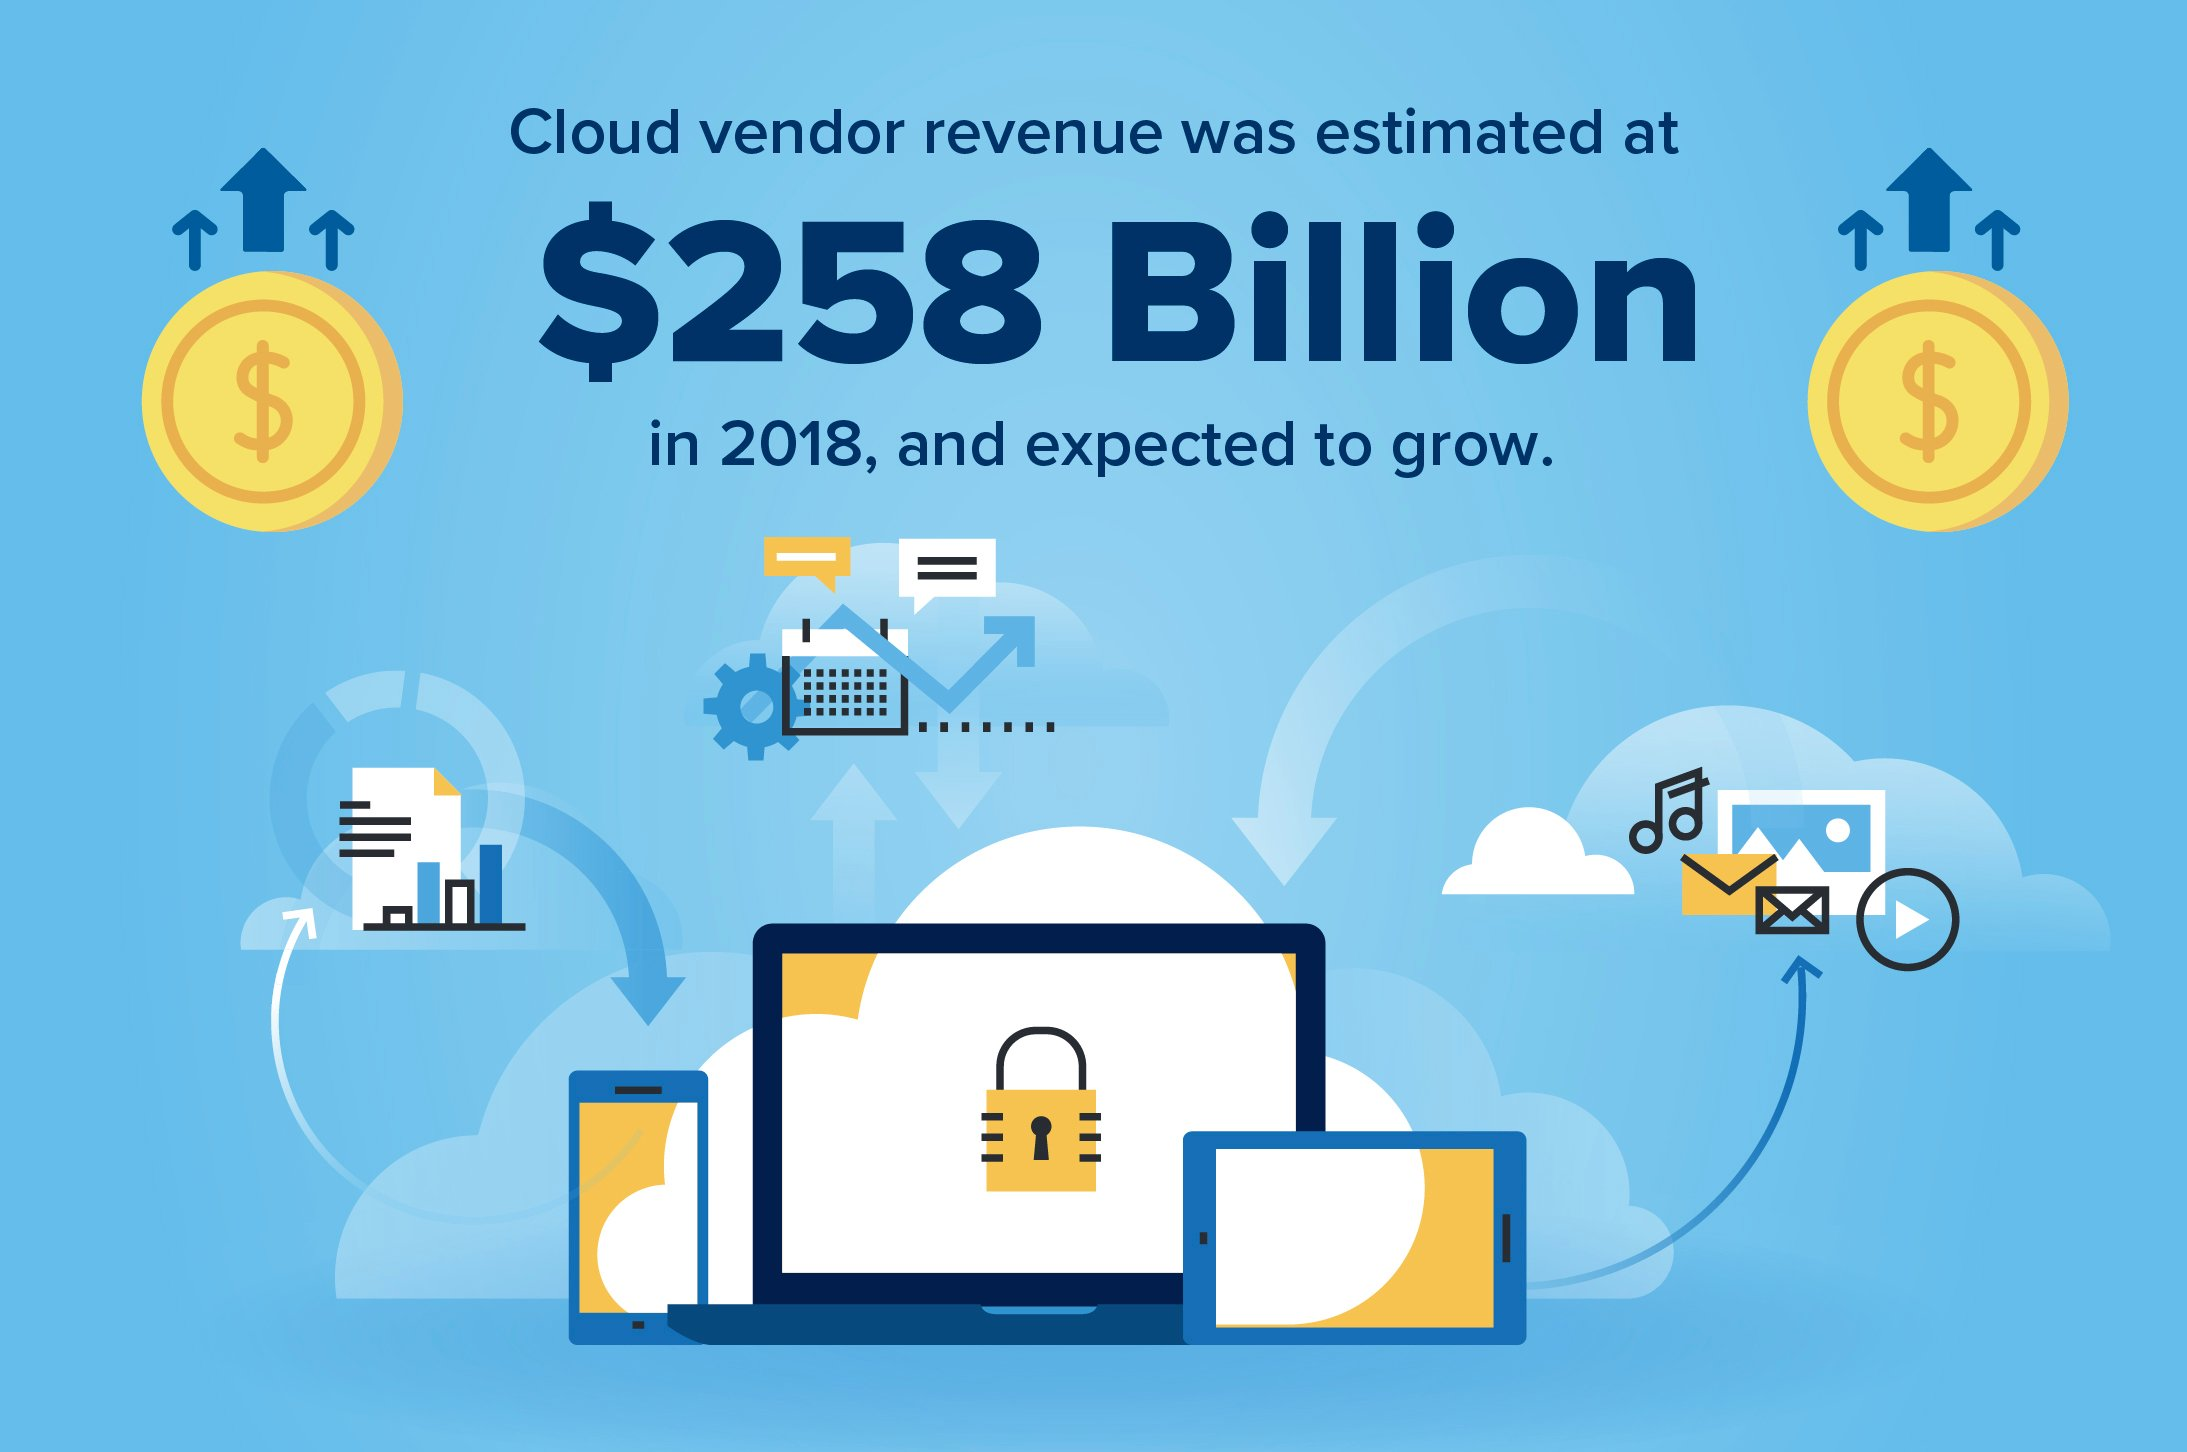 graphic showing that cloud vendor revenue was at $258 billion in 2018 and is only expected to grow